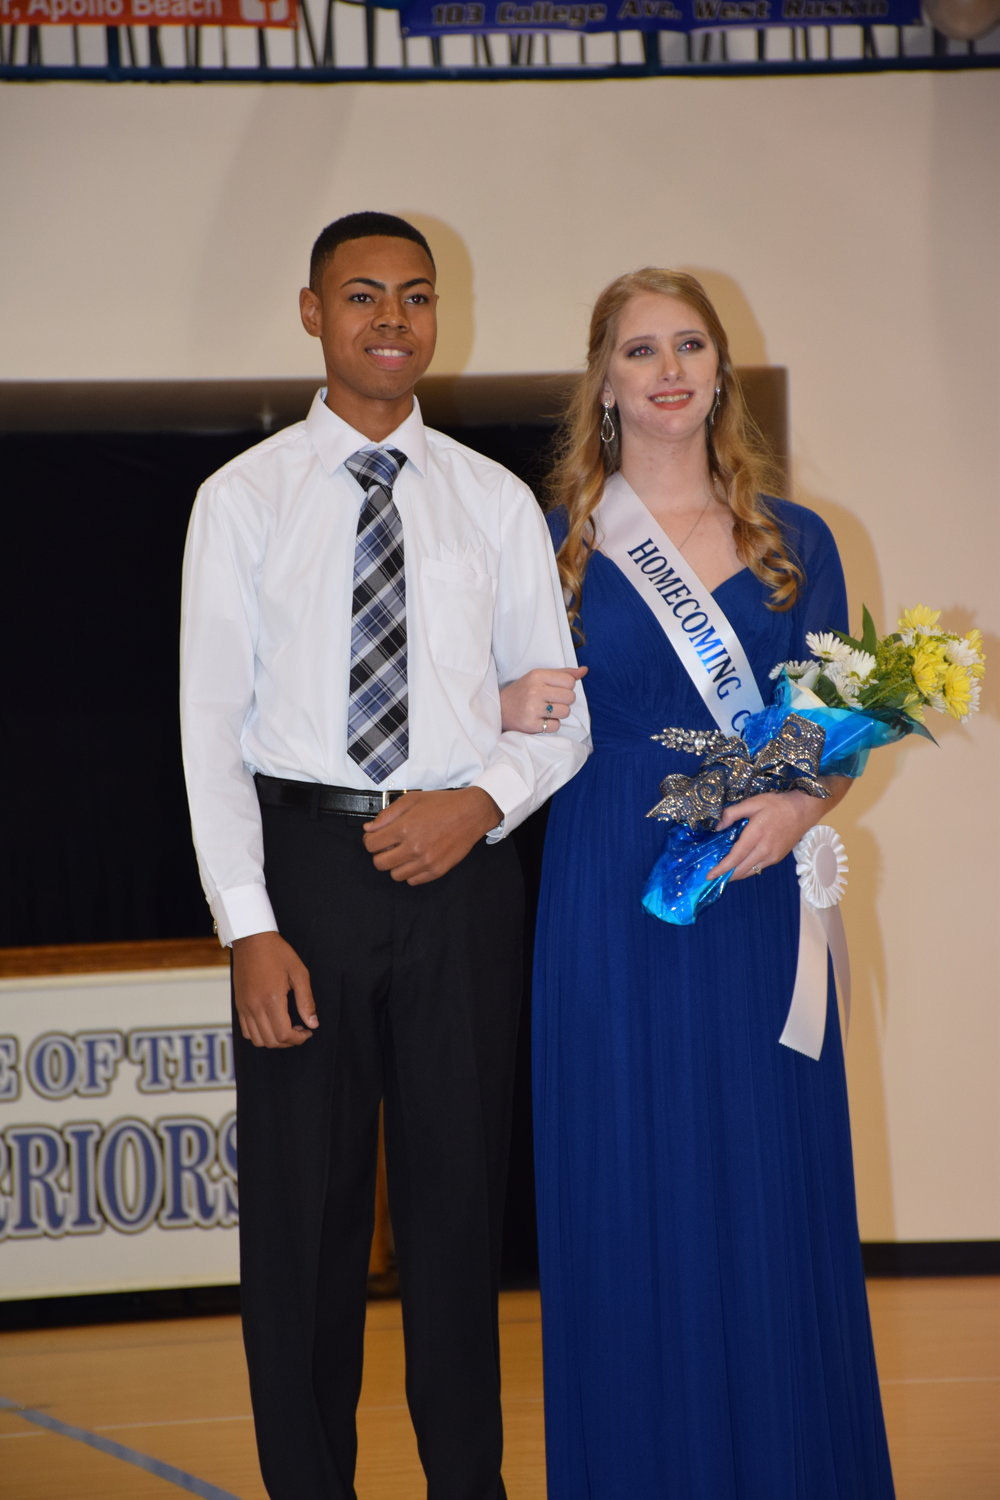 CJ Cartwright & Erin Knight - Homecoming Court